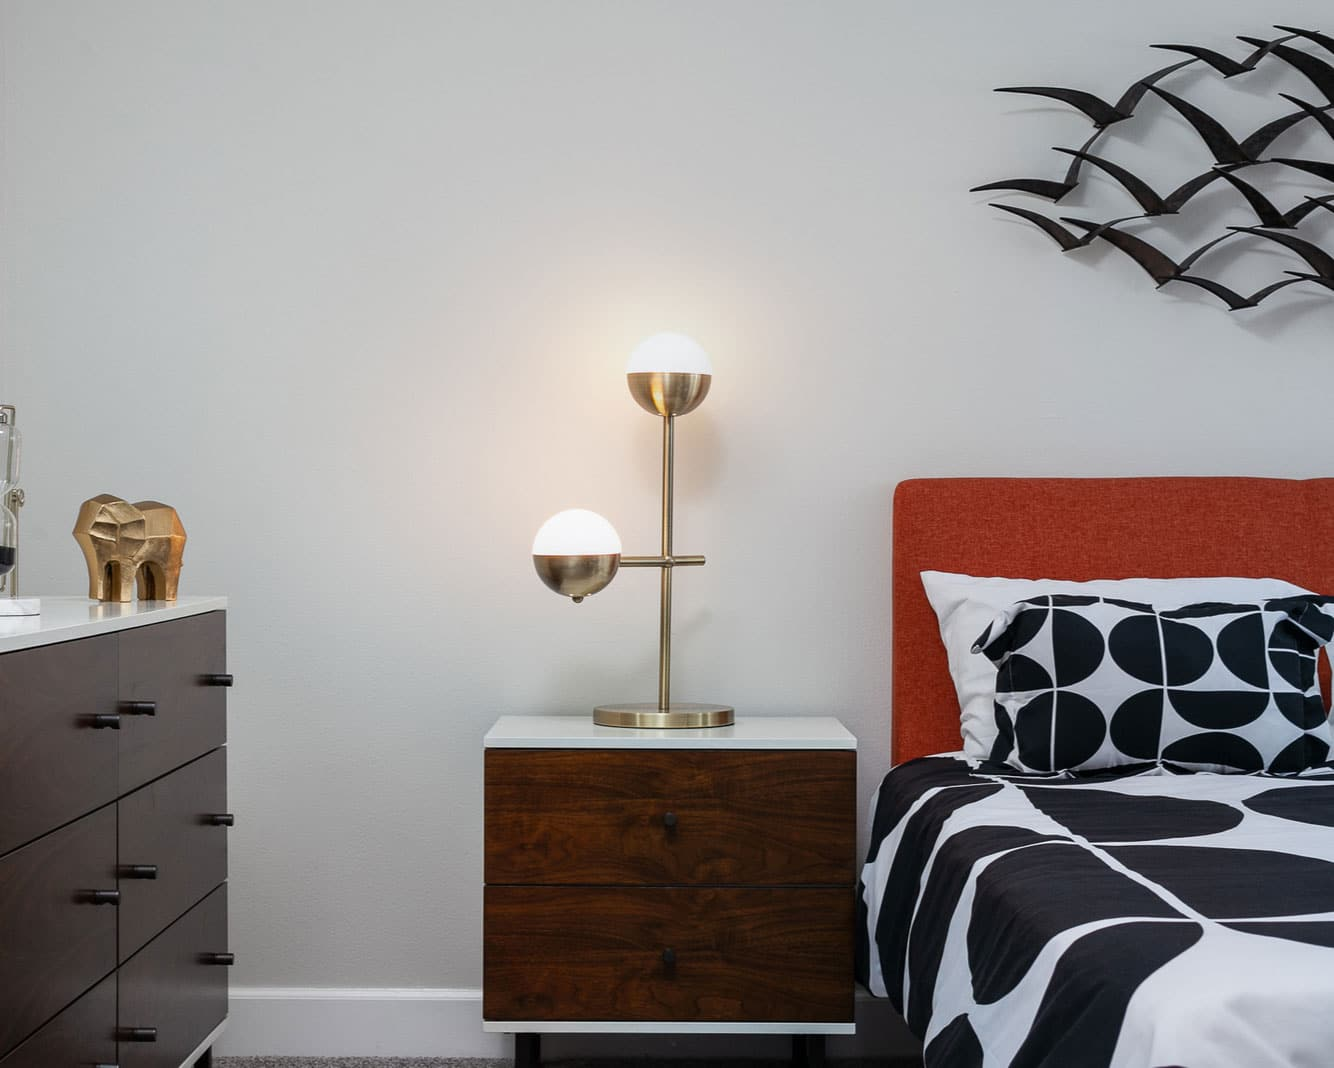 Bedroom with bedside table, bed, dresser, and decor